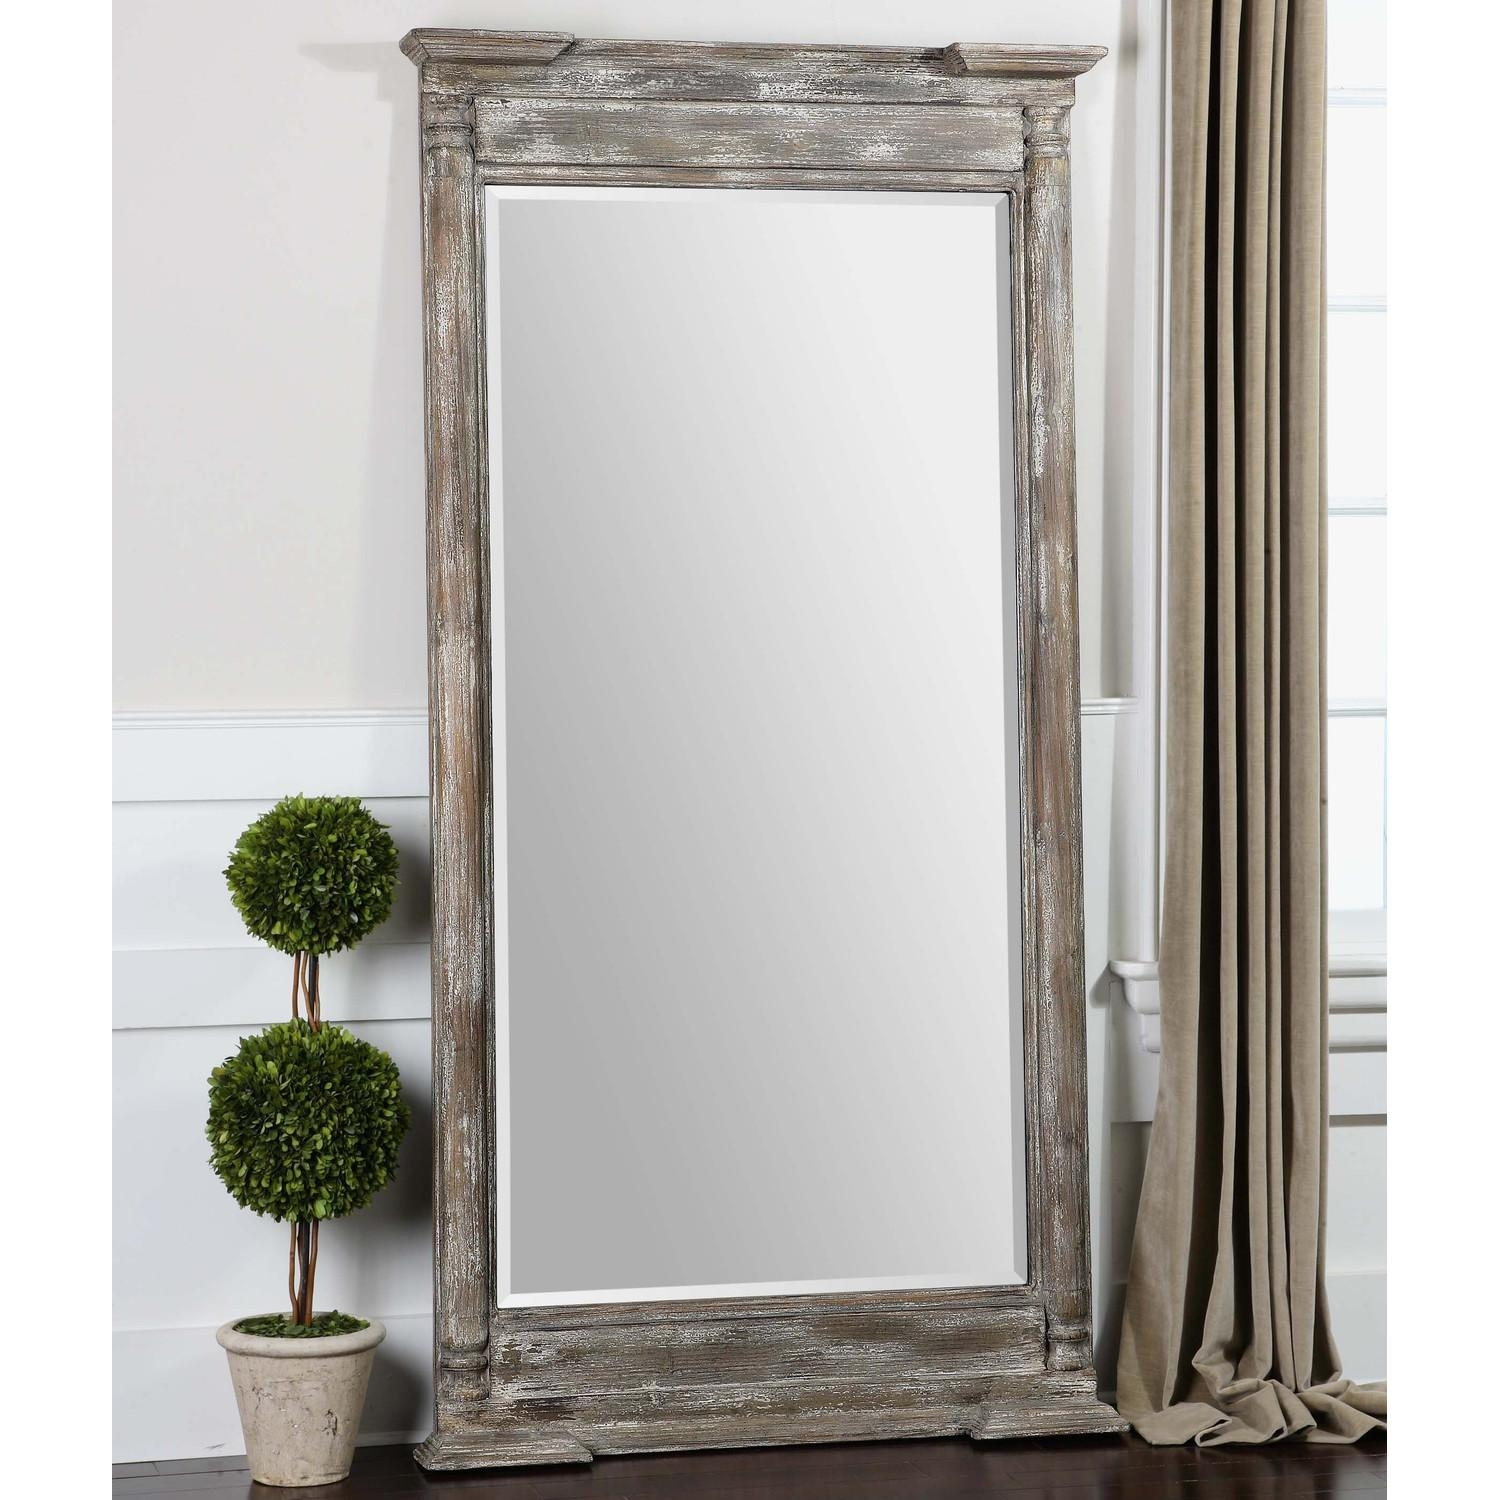 Extra Large Floor Length Mirror | Floor Decoration Regarding Very Large Mirrors For Sale (View 19 of 20)